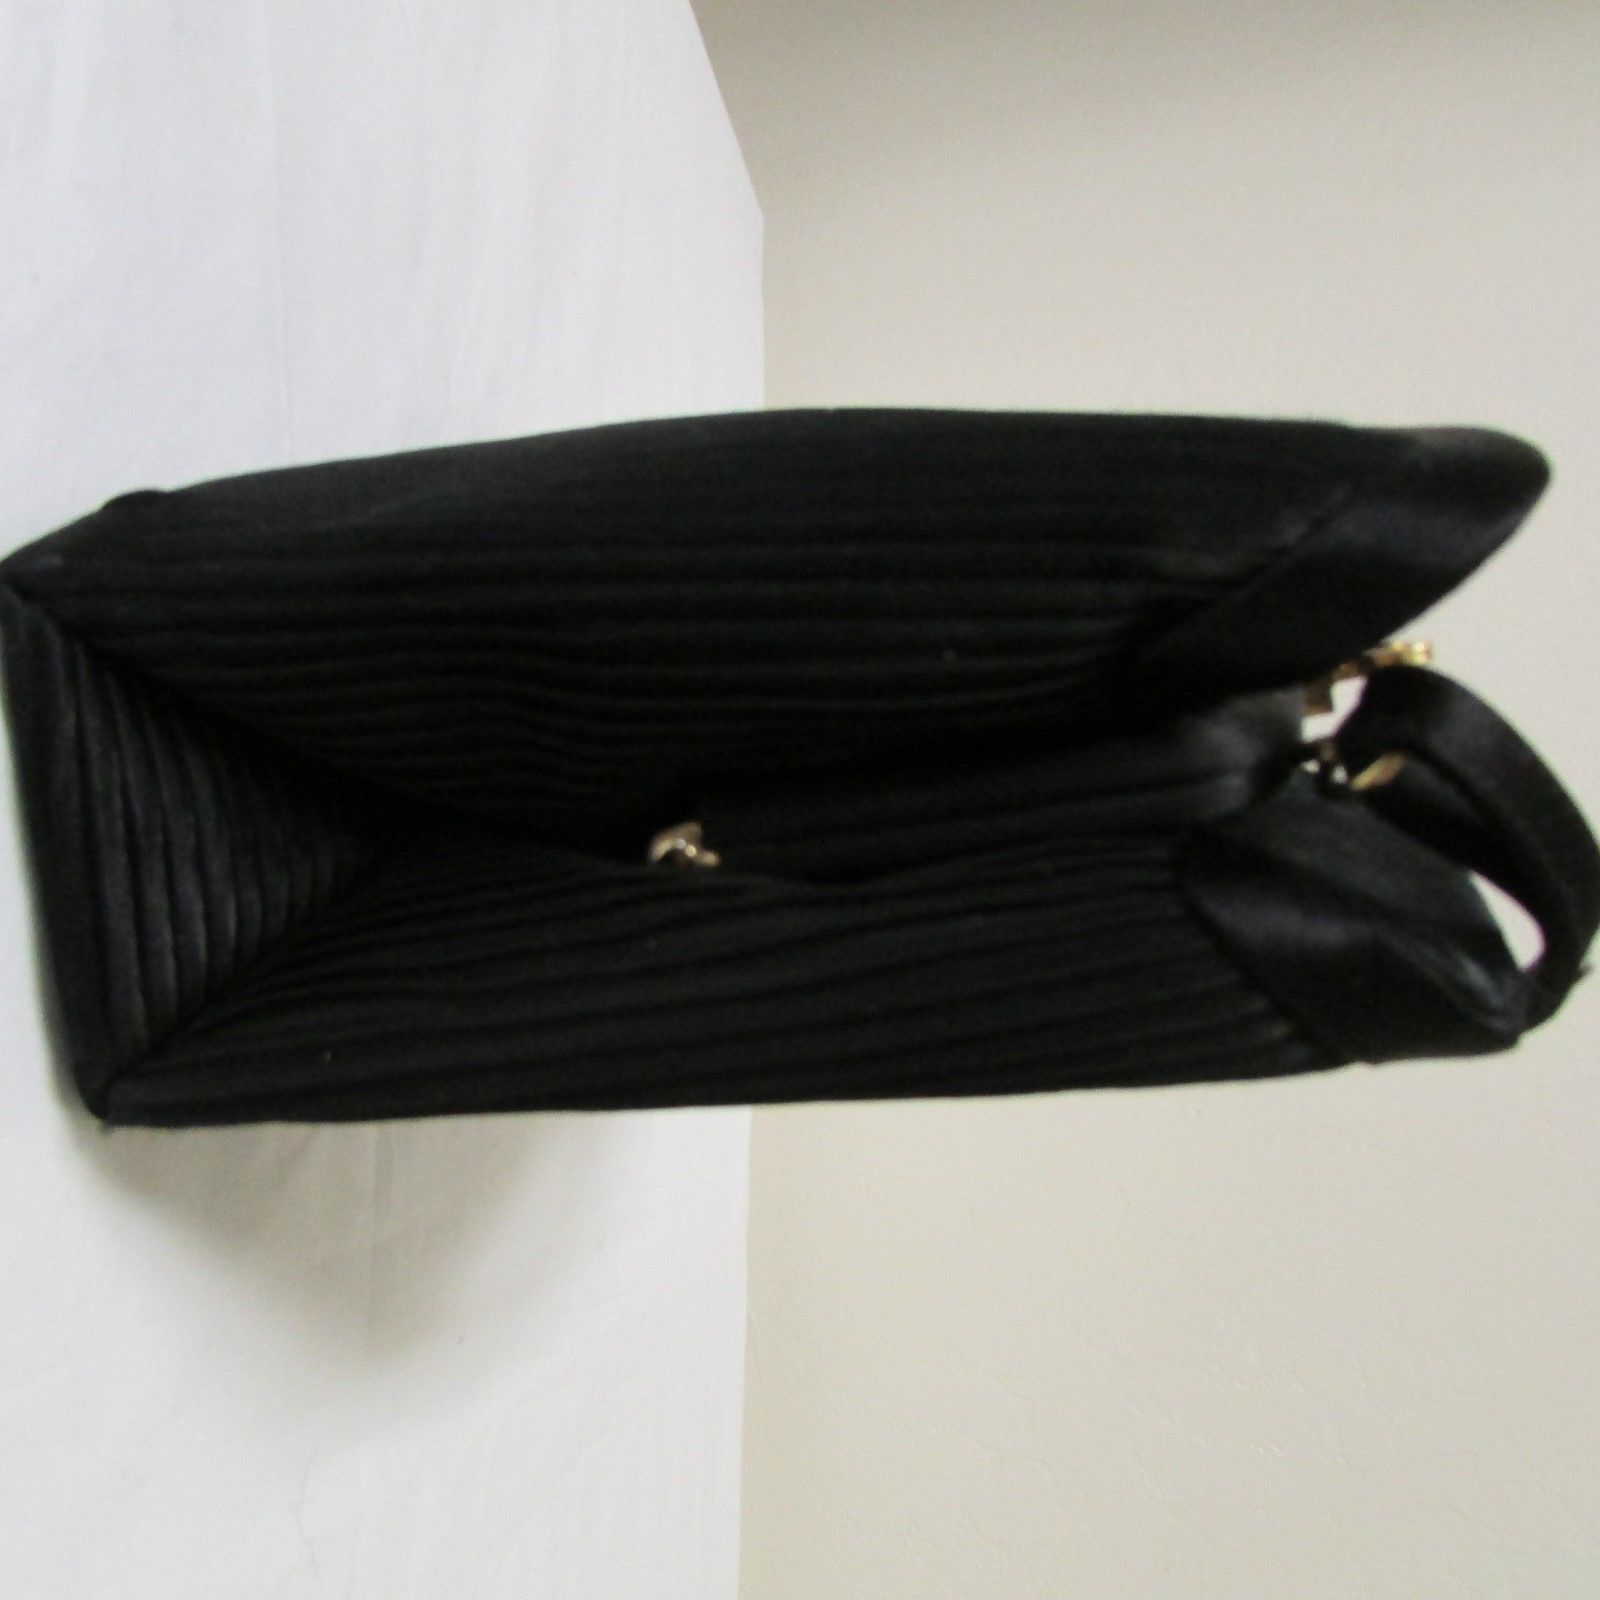 Black Satin 3 Section Small Evening Bag image 3